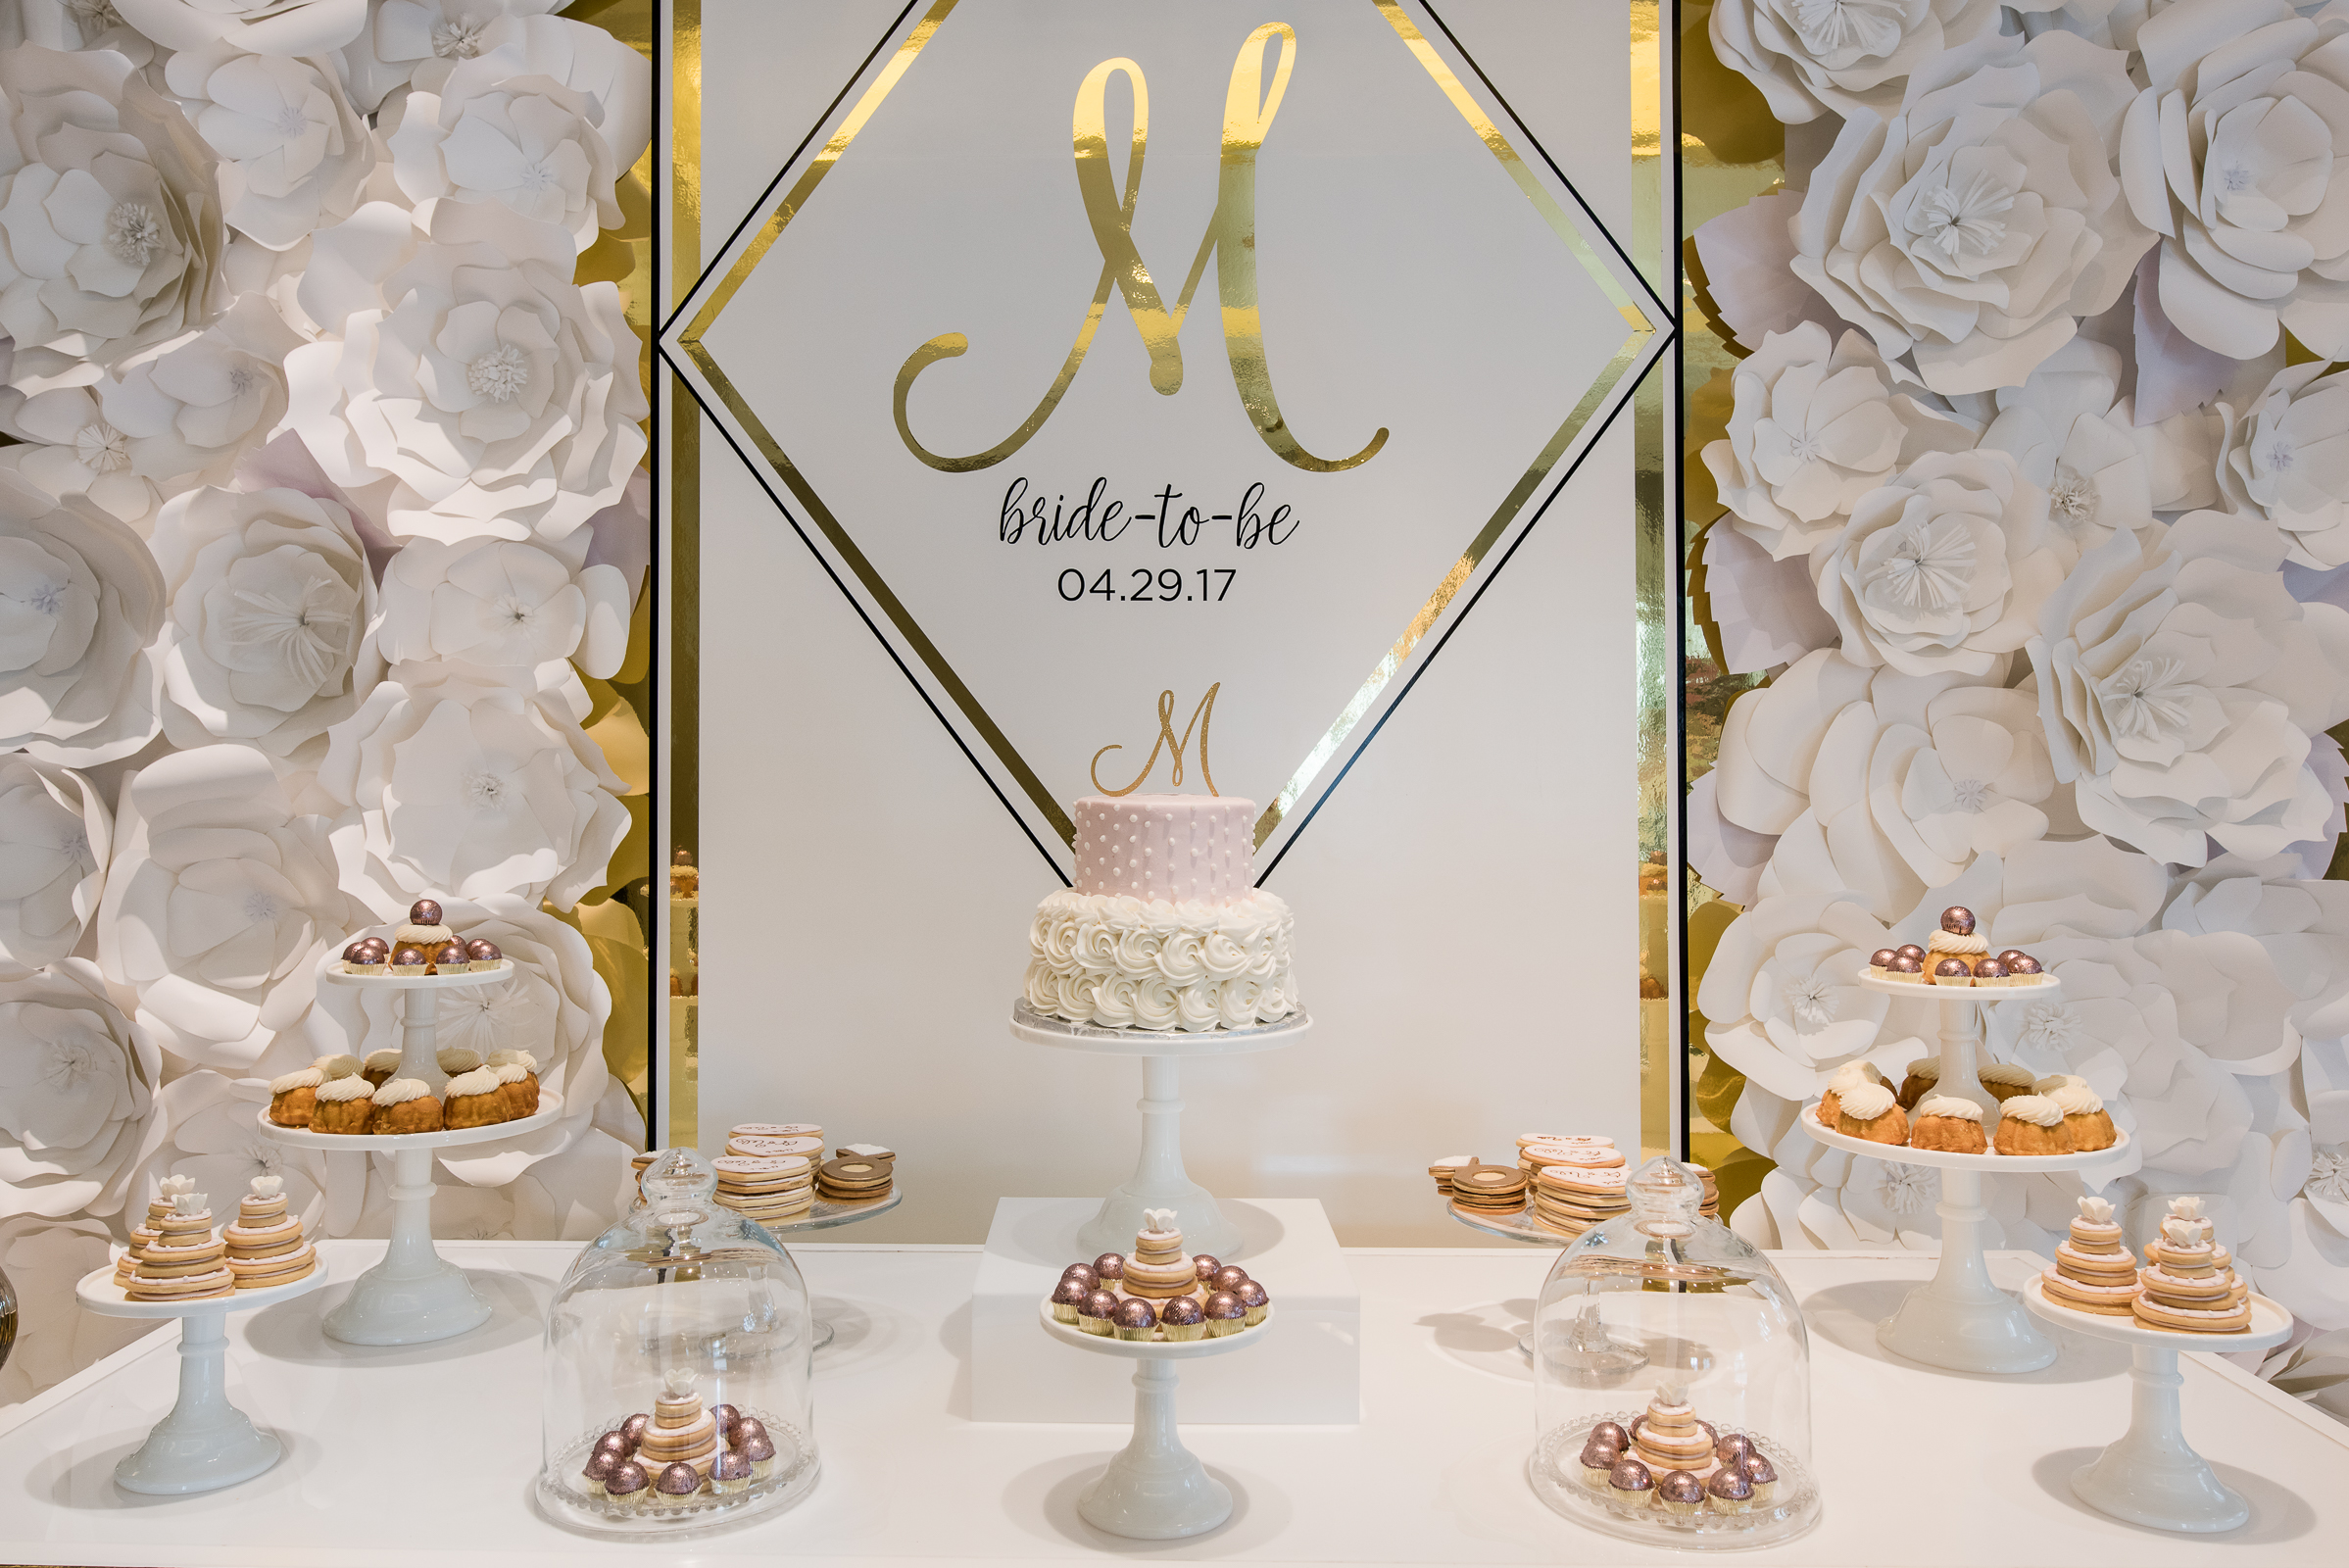 The magnificent dessert display of sweet treats with a custom backdrop of gold etched wall panels personalized with a large 'M'(the bride-to-be's first initial) and shower date. The engraved backdrop was bordered by enlarged paper white floral walls